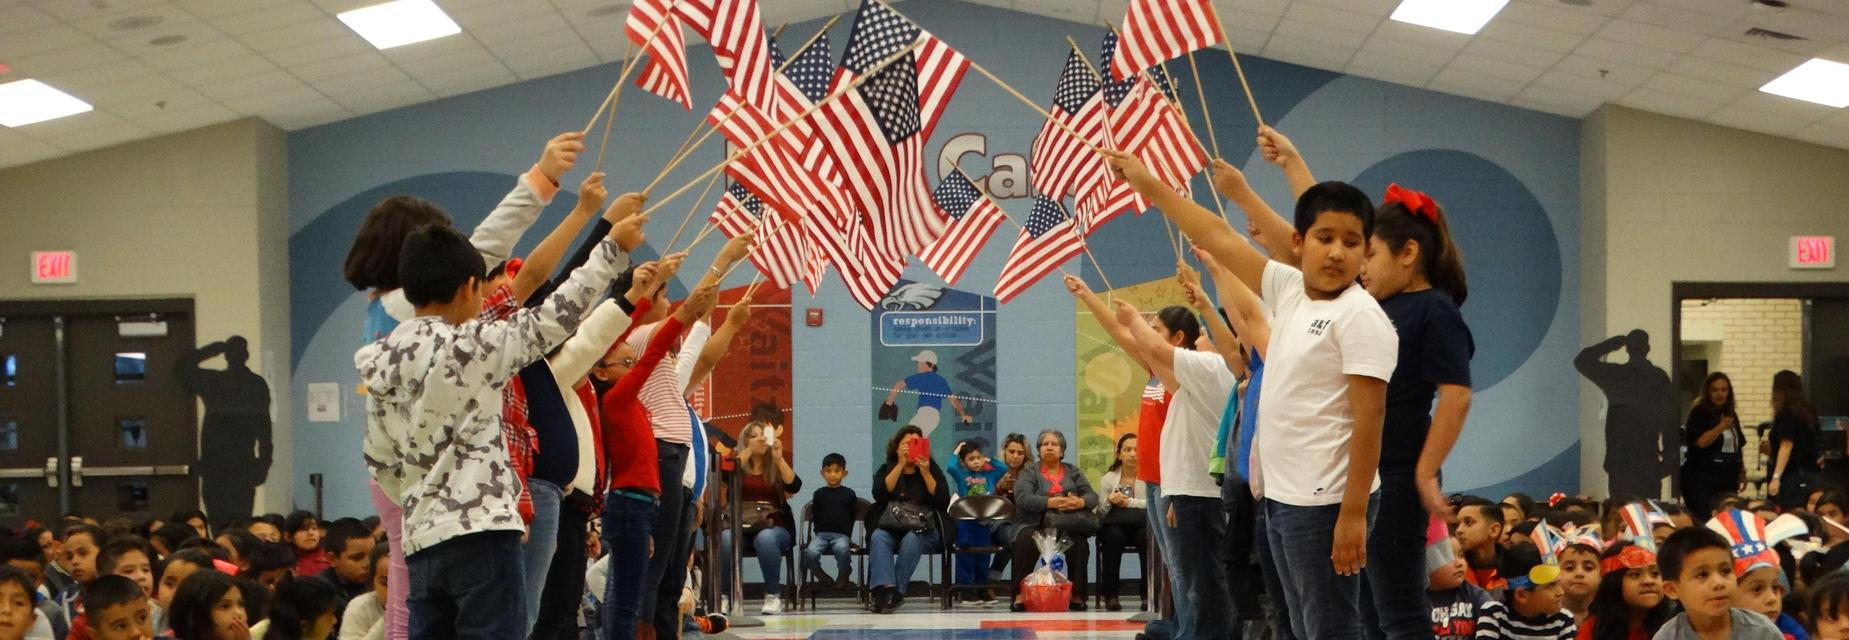 Students participating in the Veterans Day Program